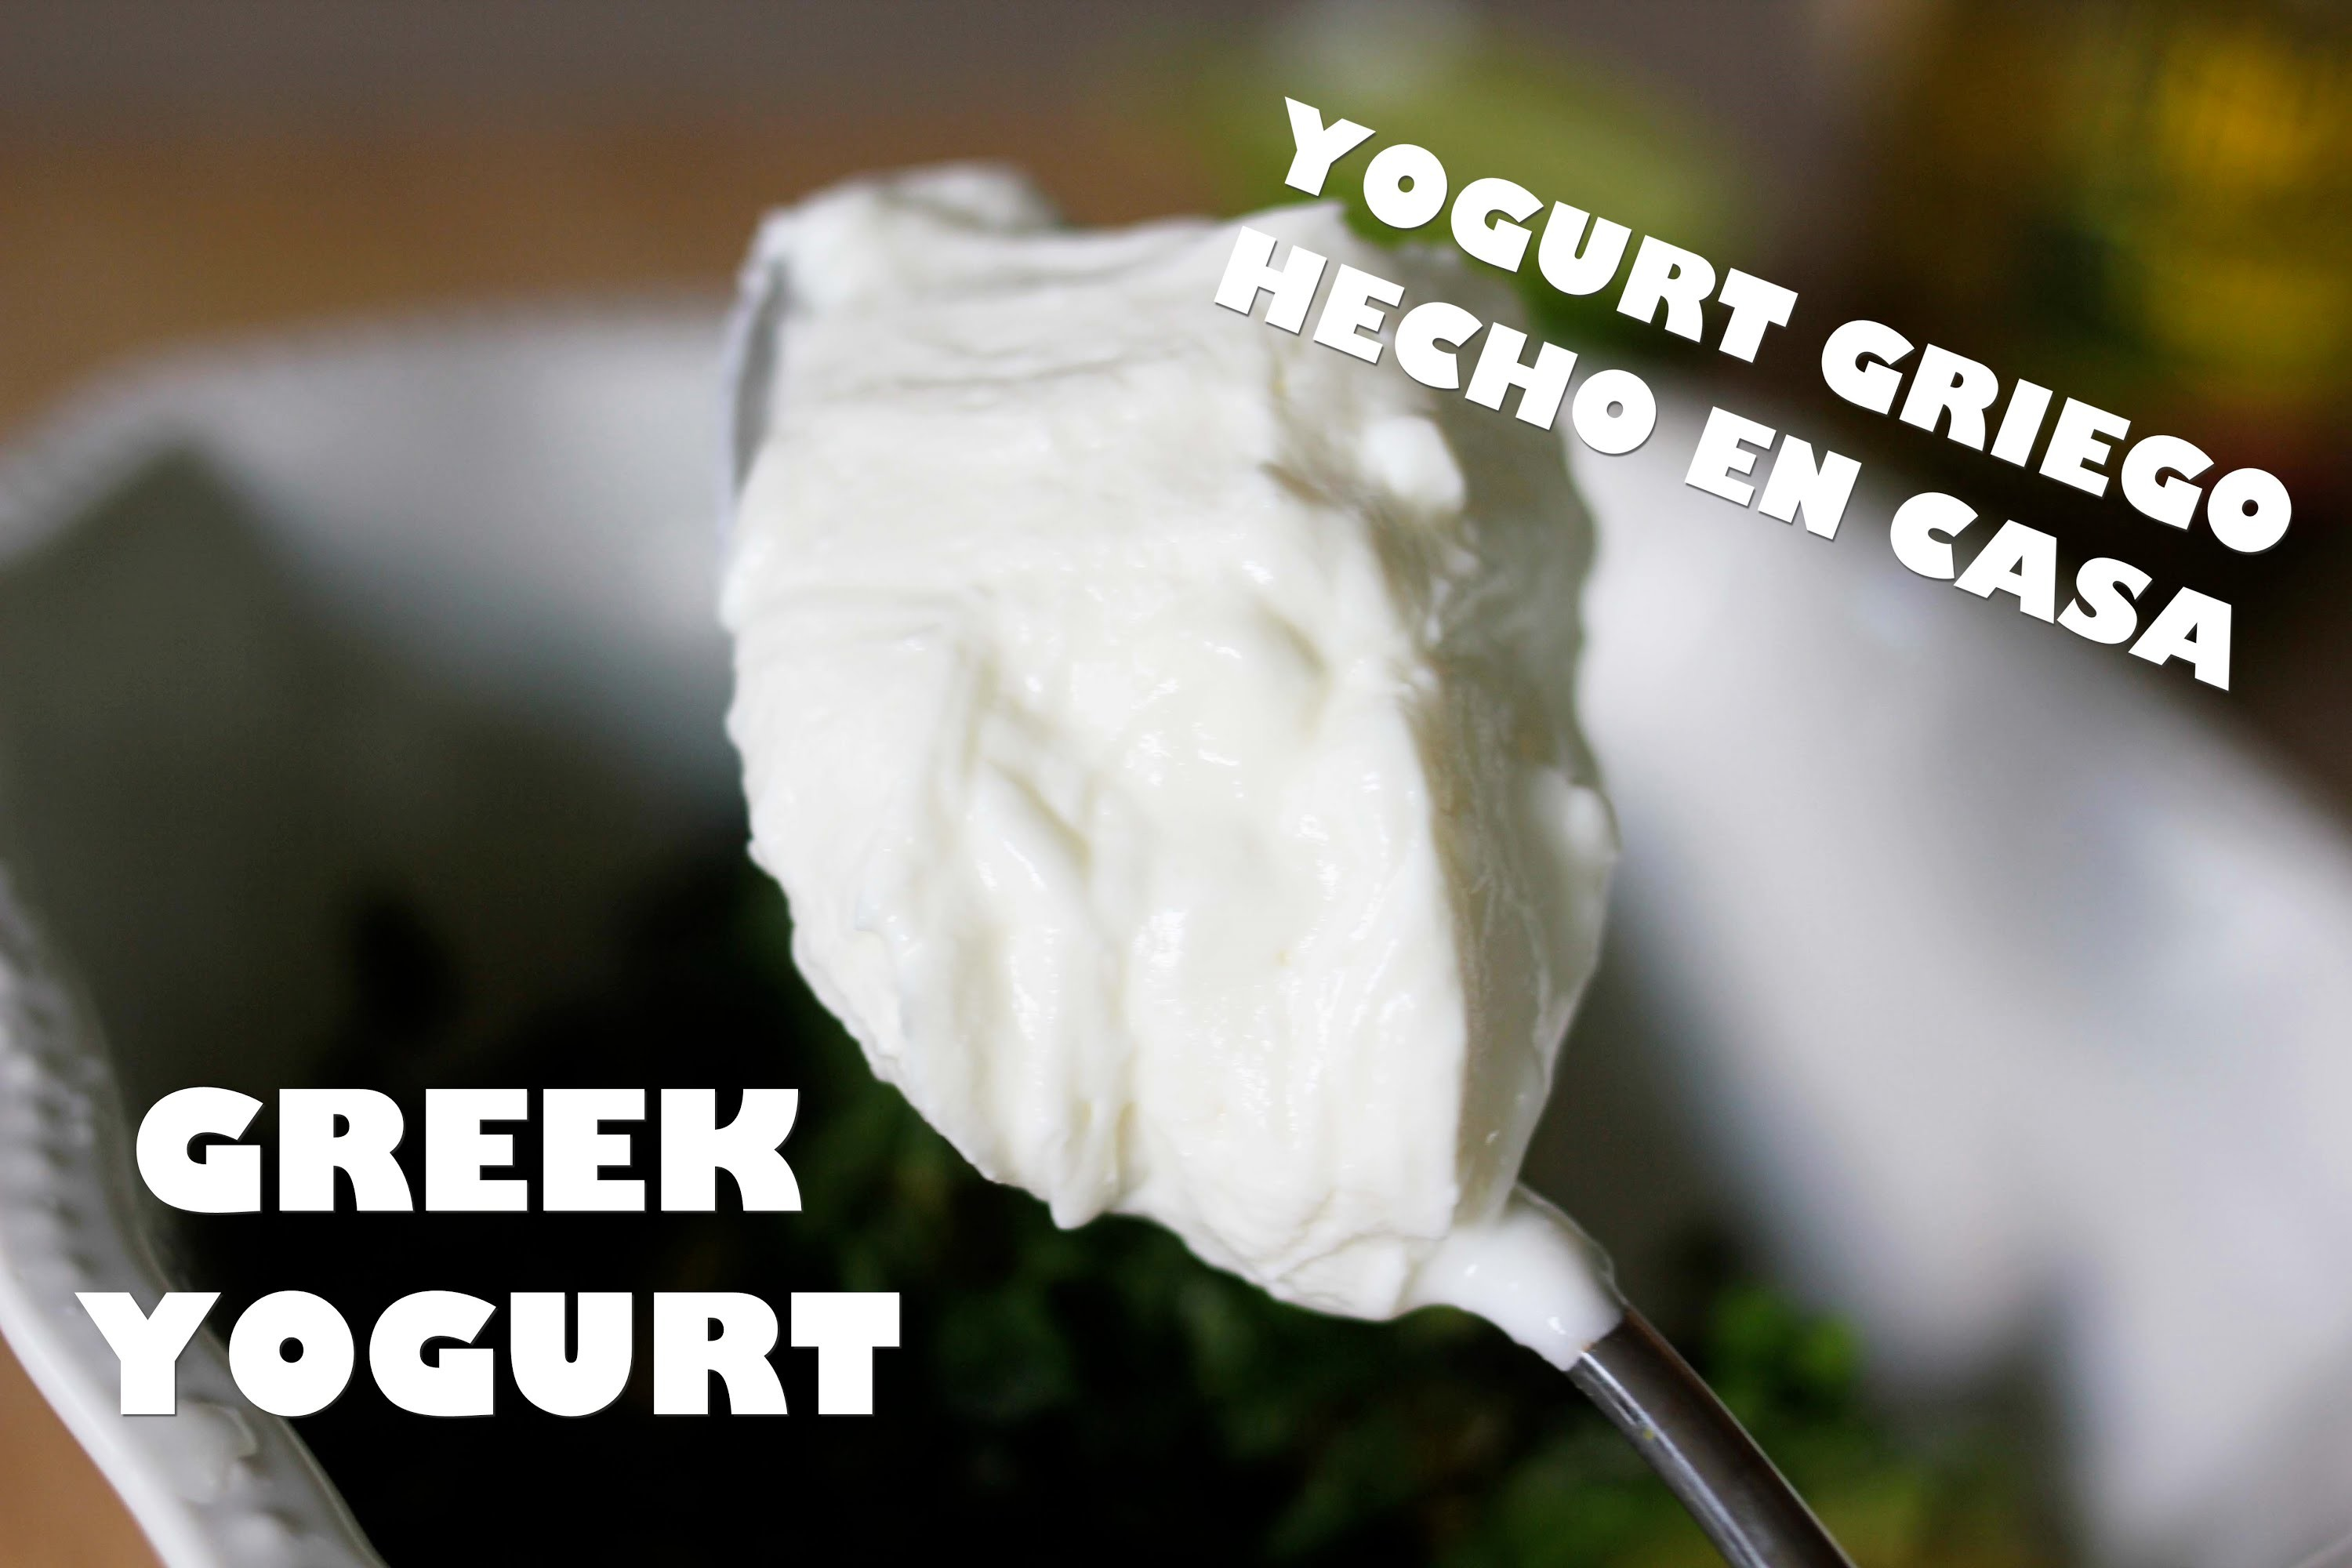 Como hacer yogurt griego light en casa y 2 recetas rapidas. Homemade Greek Yogurt